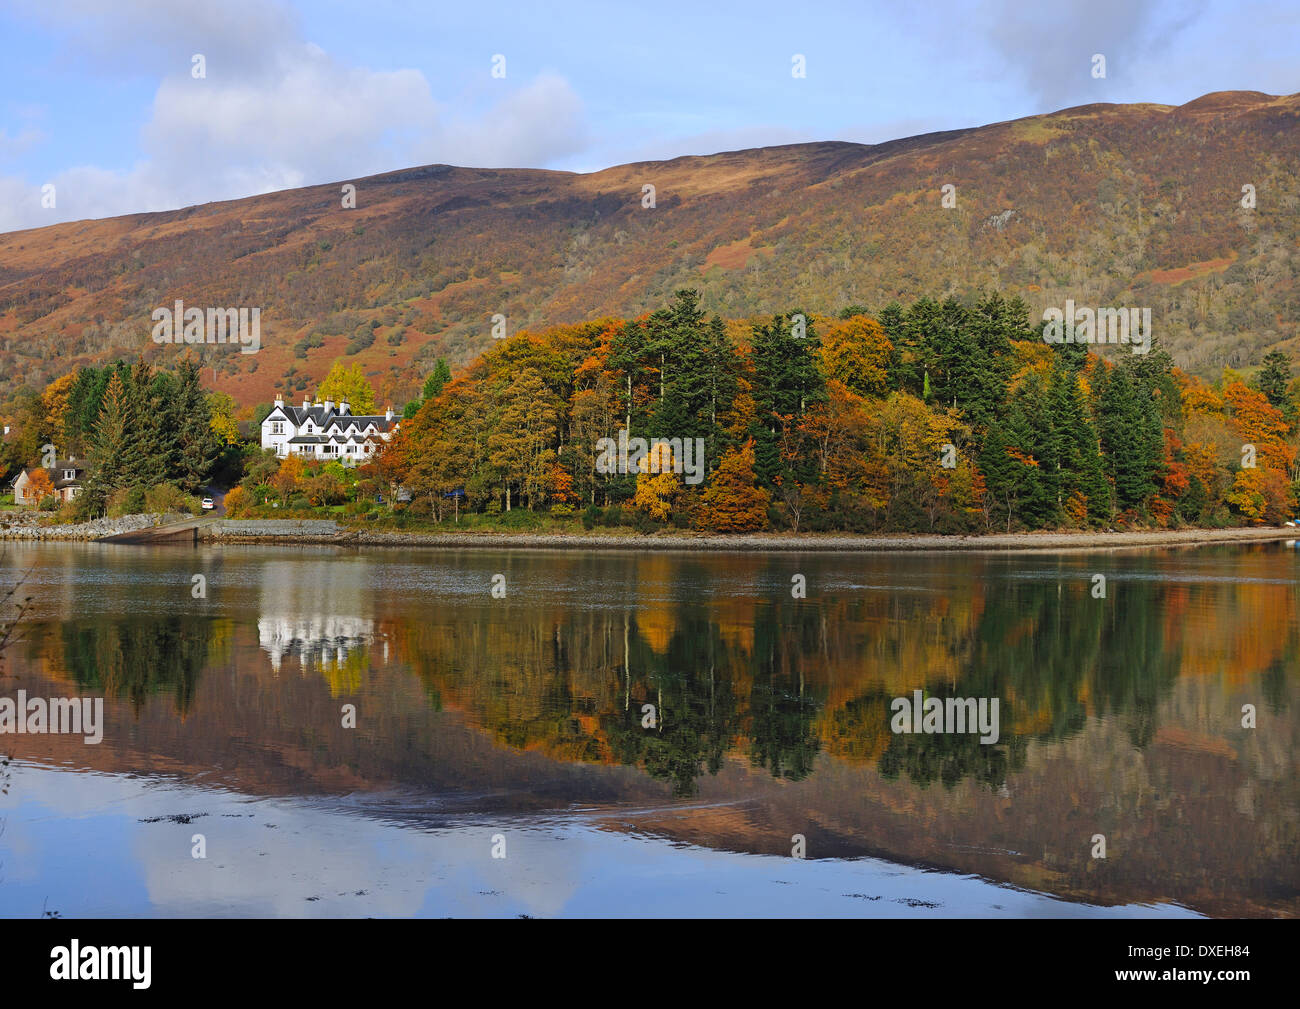 Autumn view towards the Loch Leven Hotel, Loch Leven, West Highlands. - Stock Image